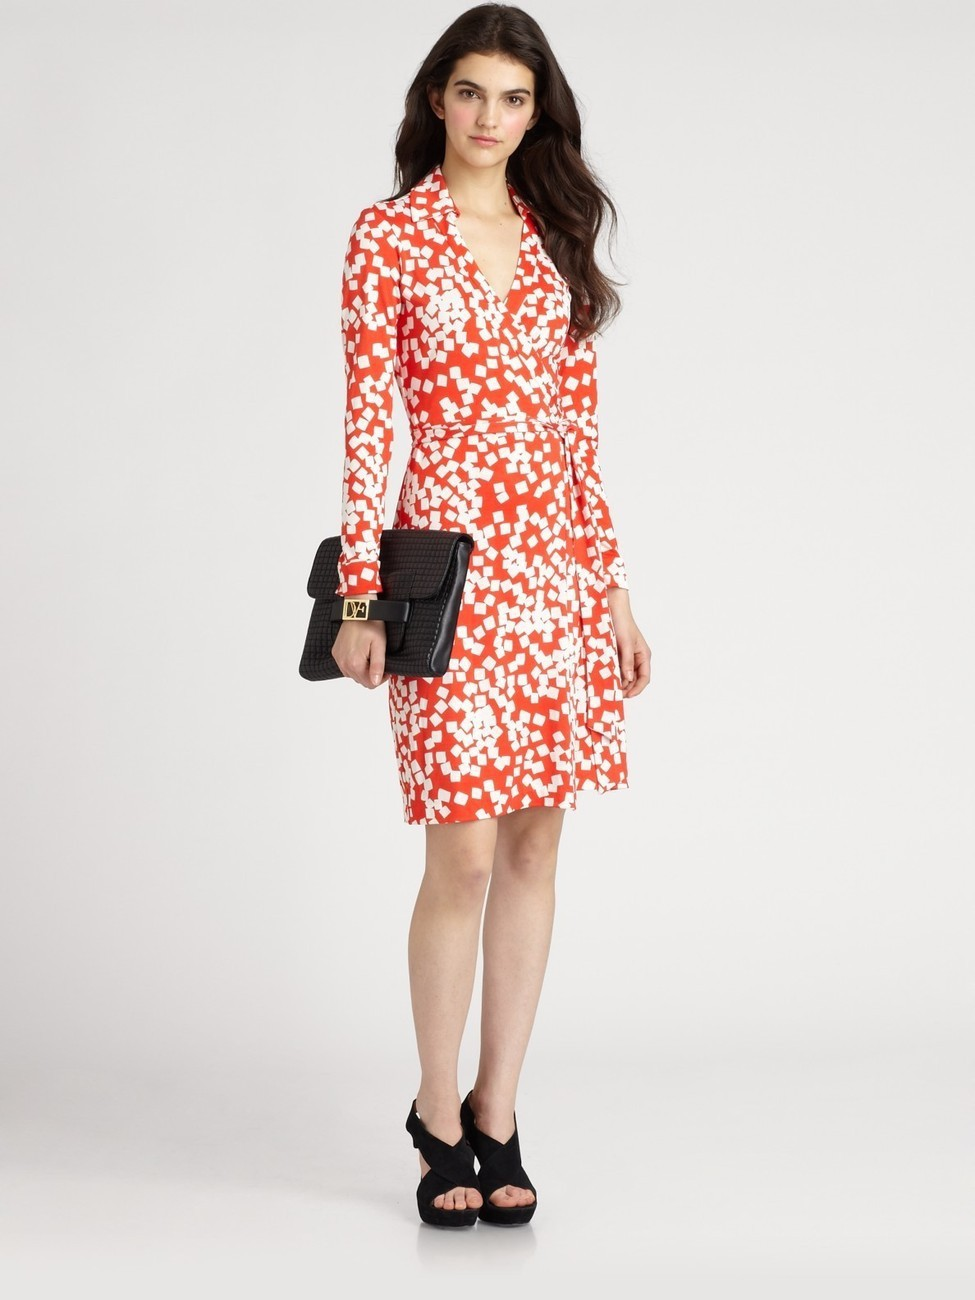 dvf wrap dress #9